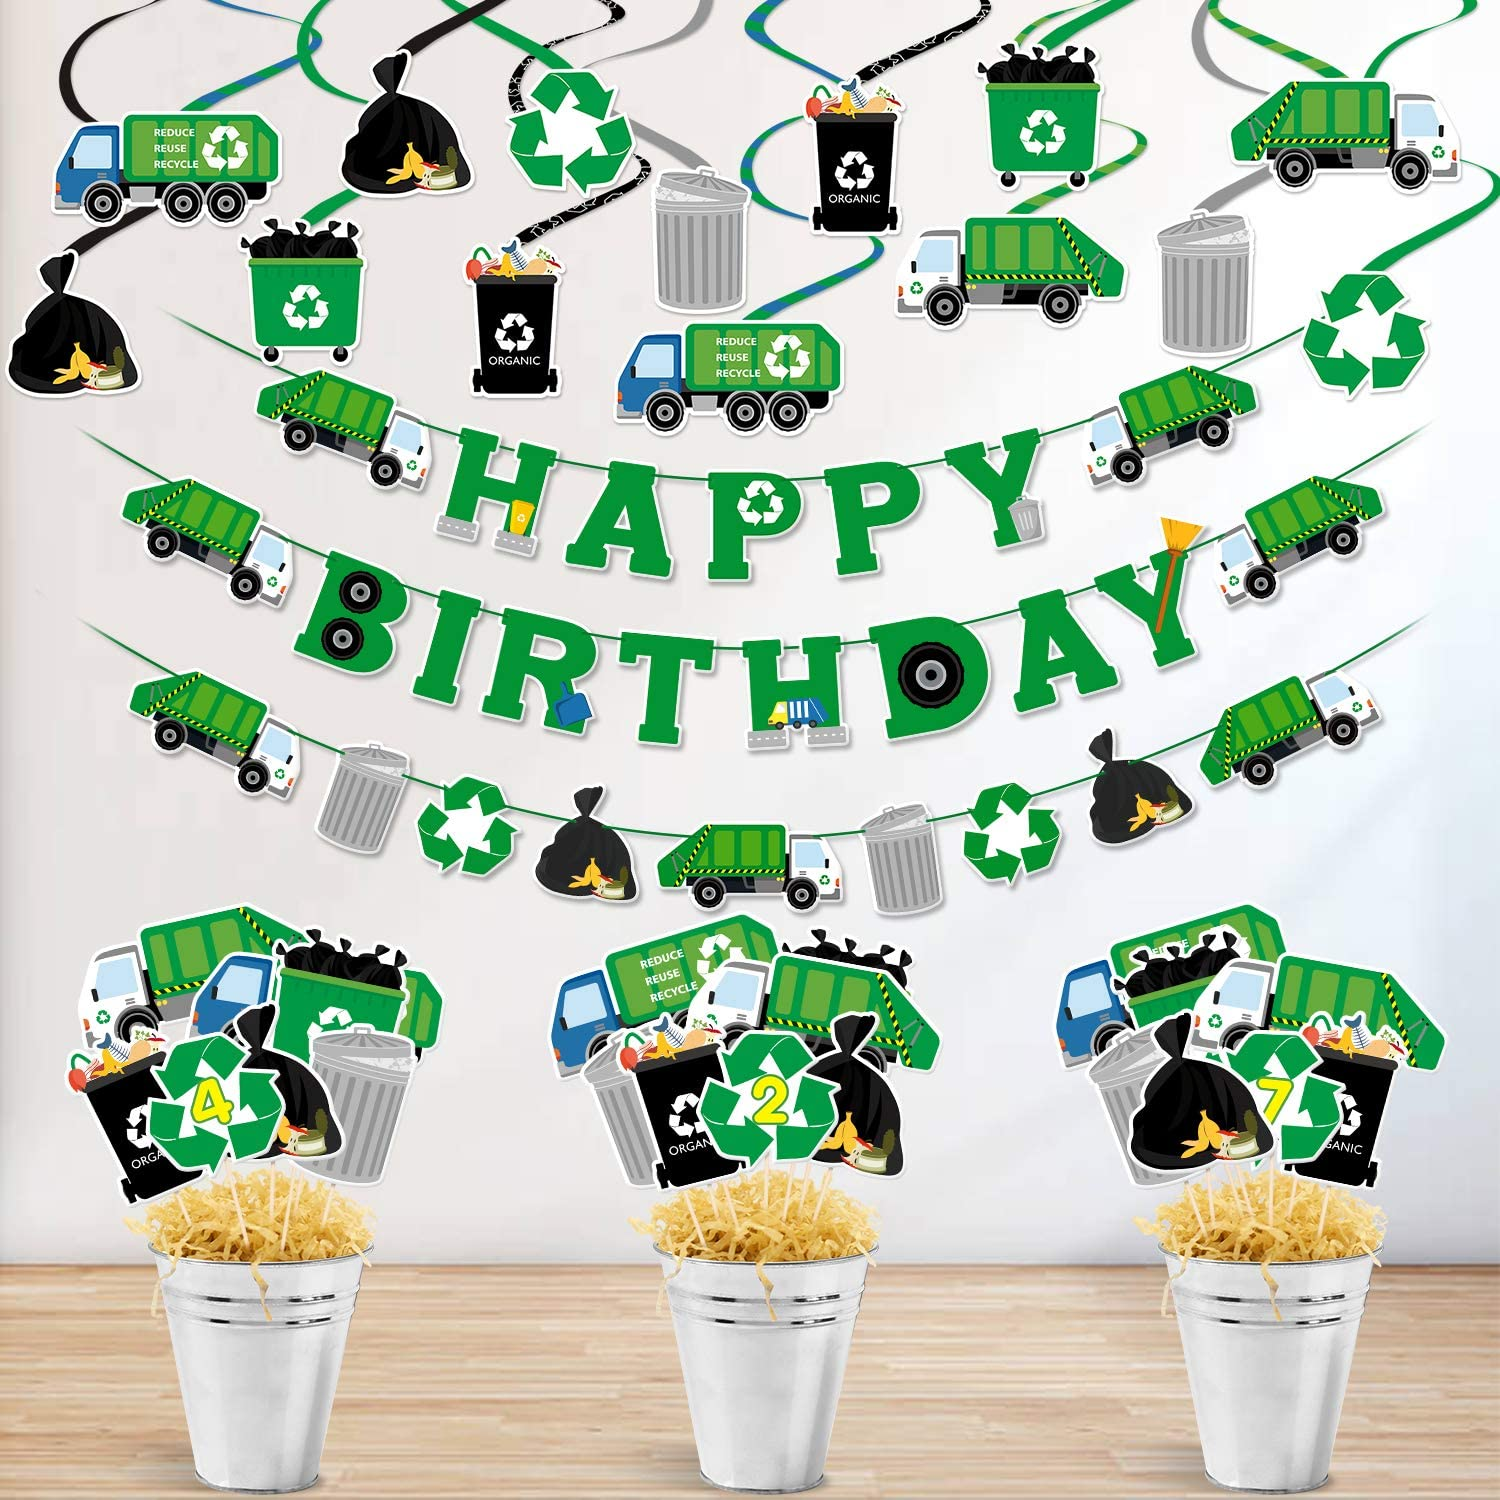 Garbage Truck Party Decorations Set Birthday Banner Garland Centerpiece Sticks Hanging Swirl Decor for Trash Truck Waste Management Recycling Party Supplies